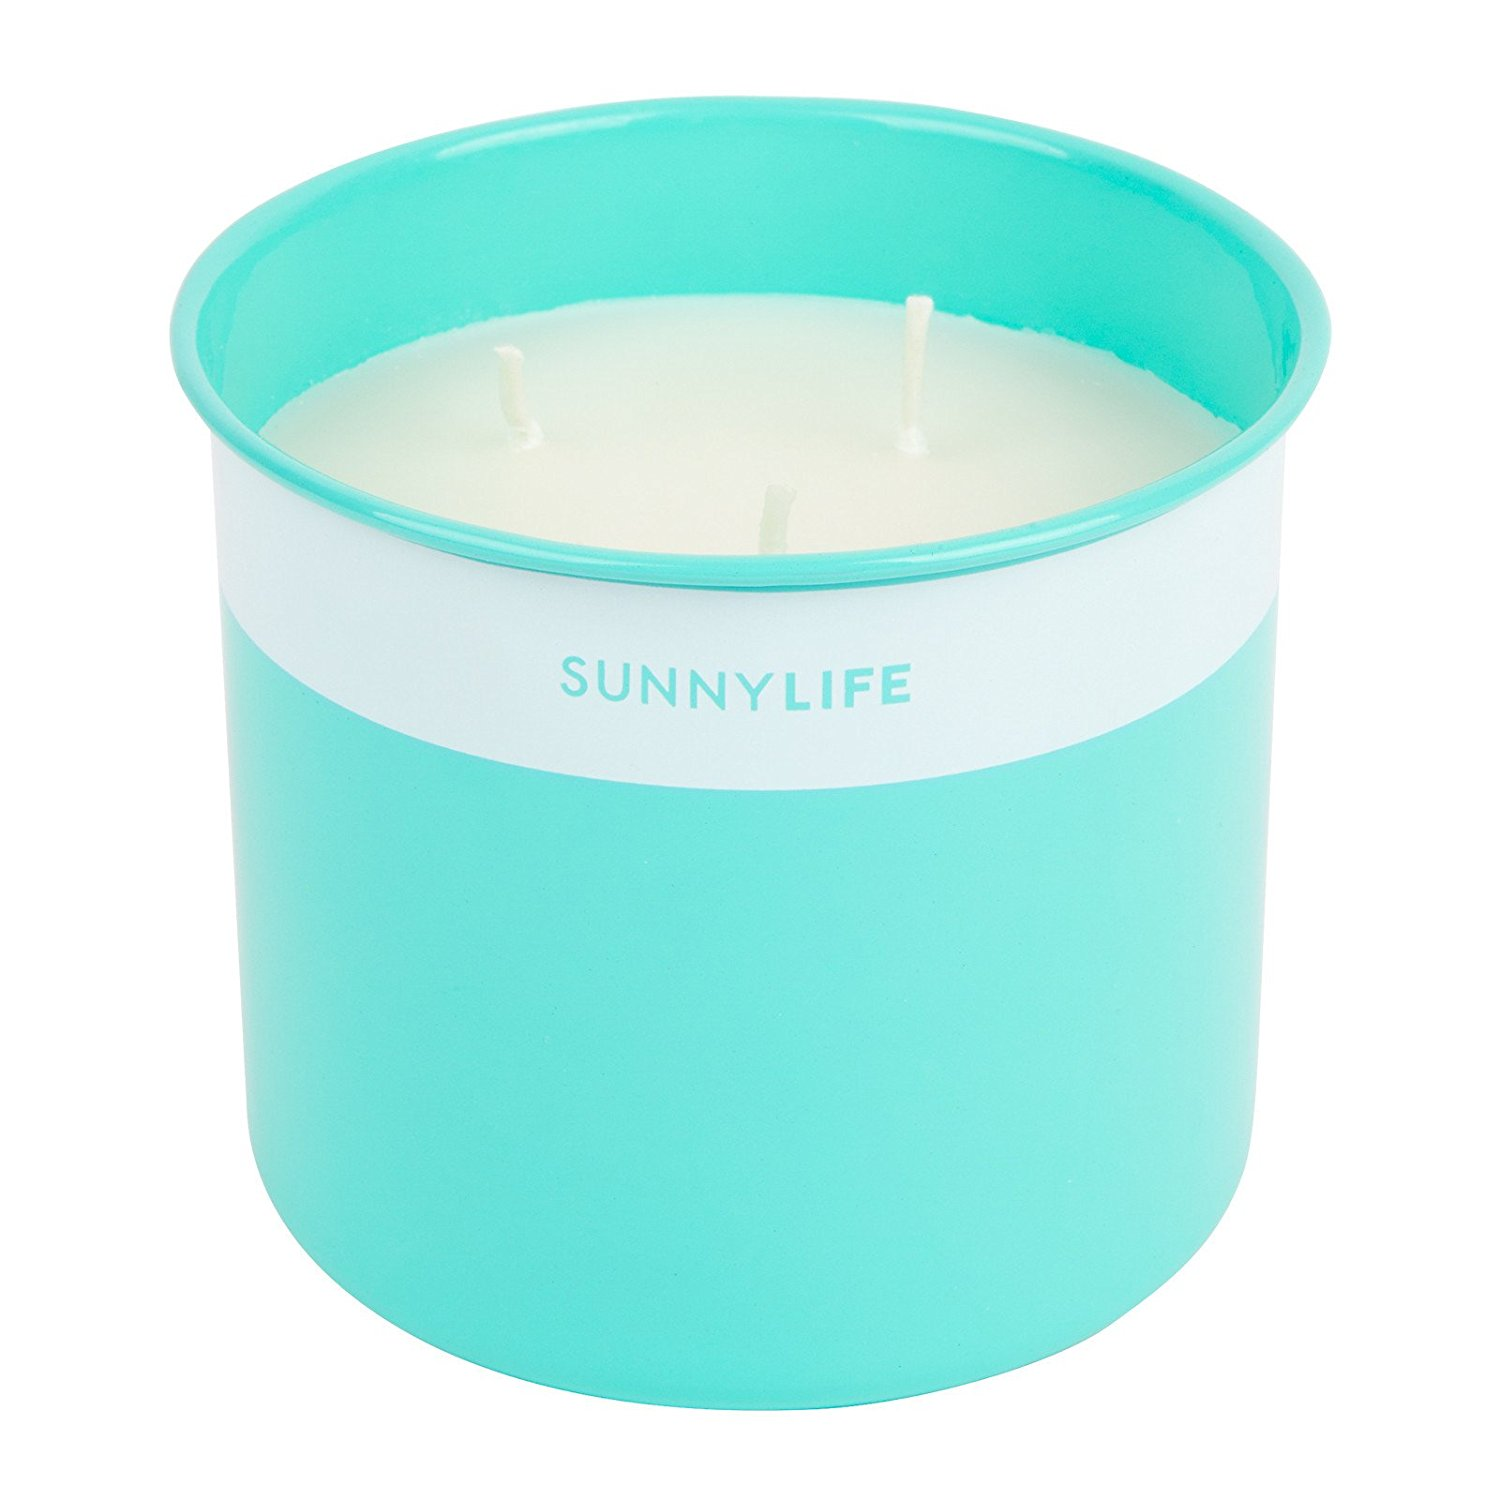 Sunnylife Outdoor Citronella Scented Wax Candle, Keep Mosquitos and Bugs Away - Turquoise, Large